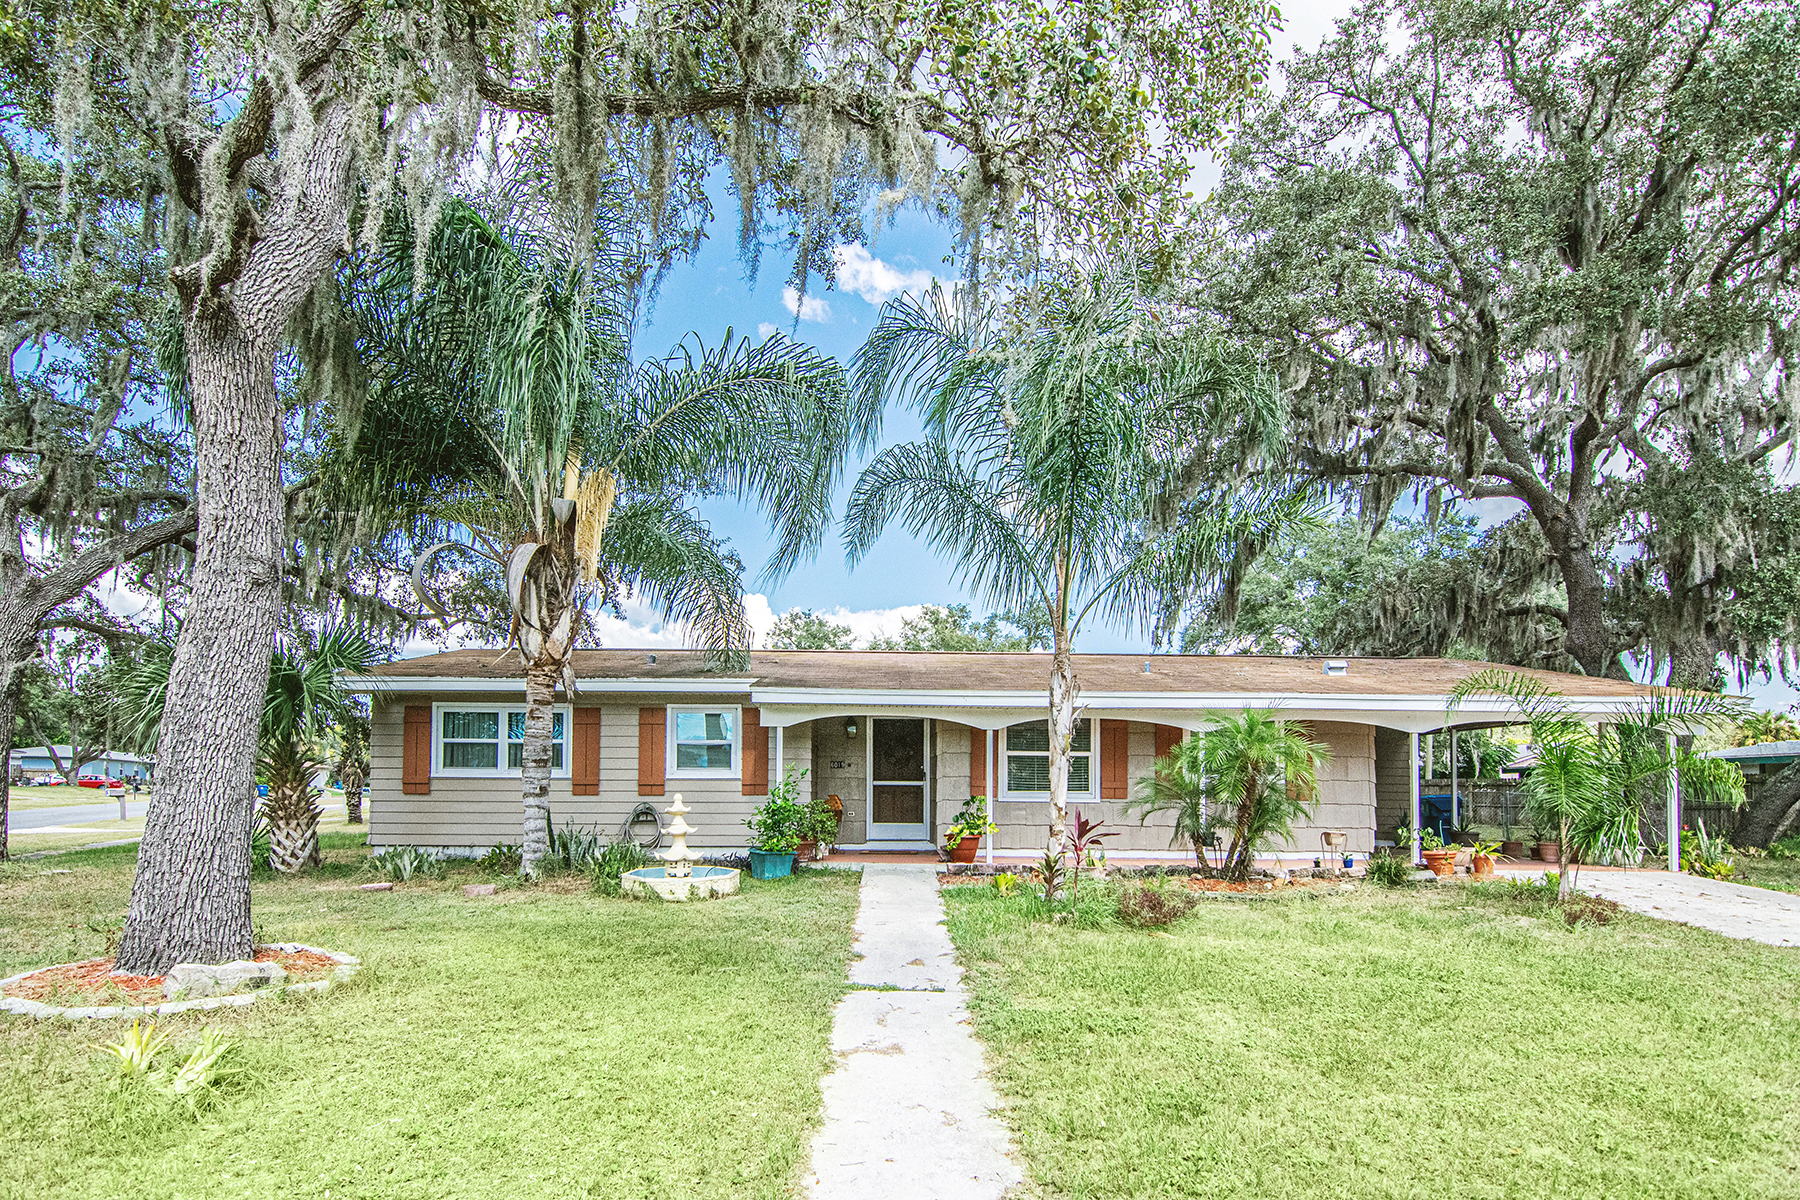 Single Family Homes for Sale at SPRING HILL 6019 Ashland Dr, Spring Hill, Florida 34606 United States